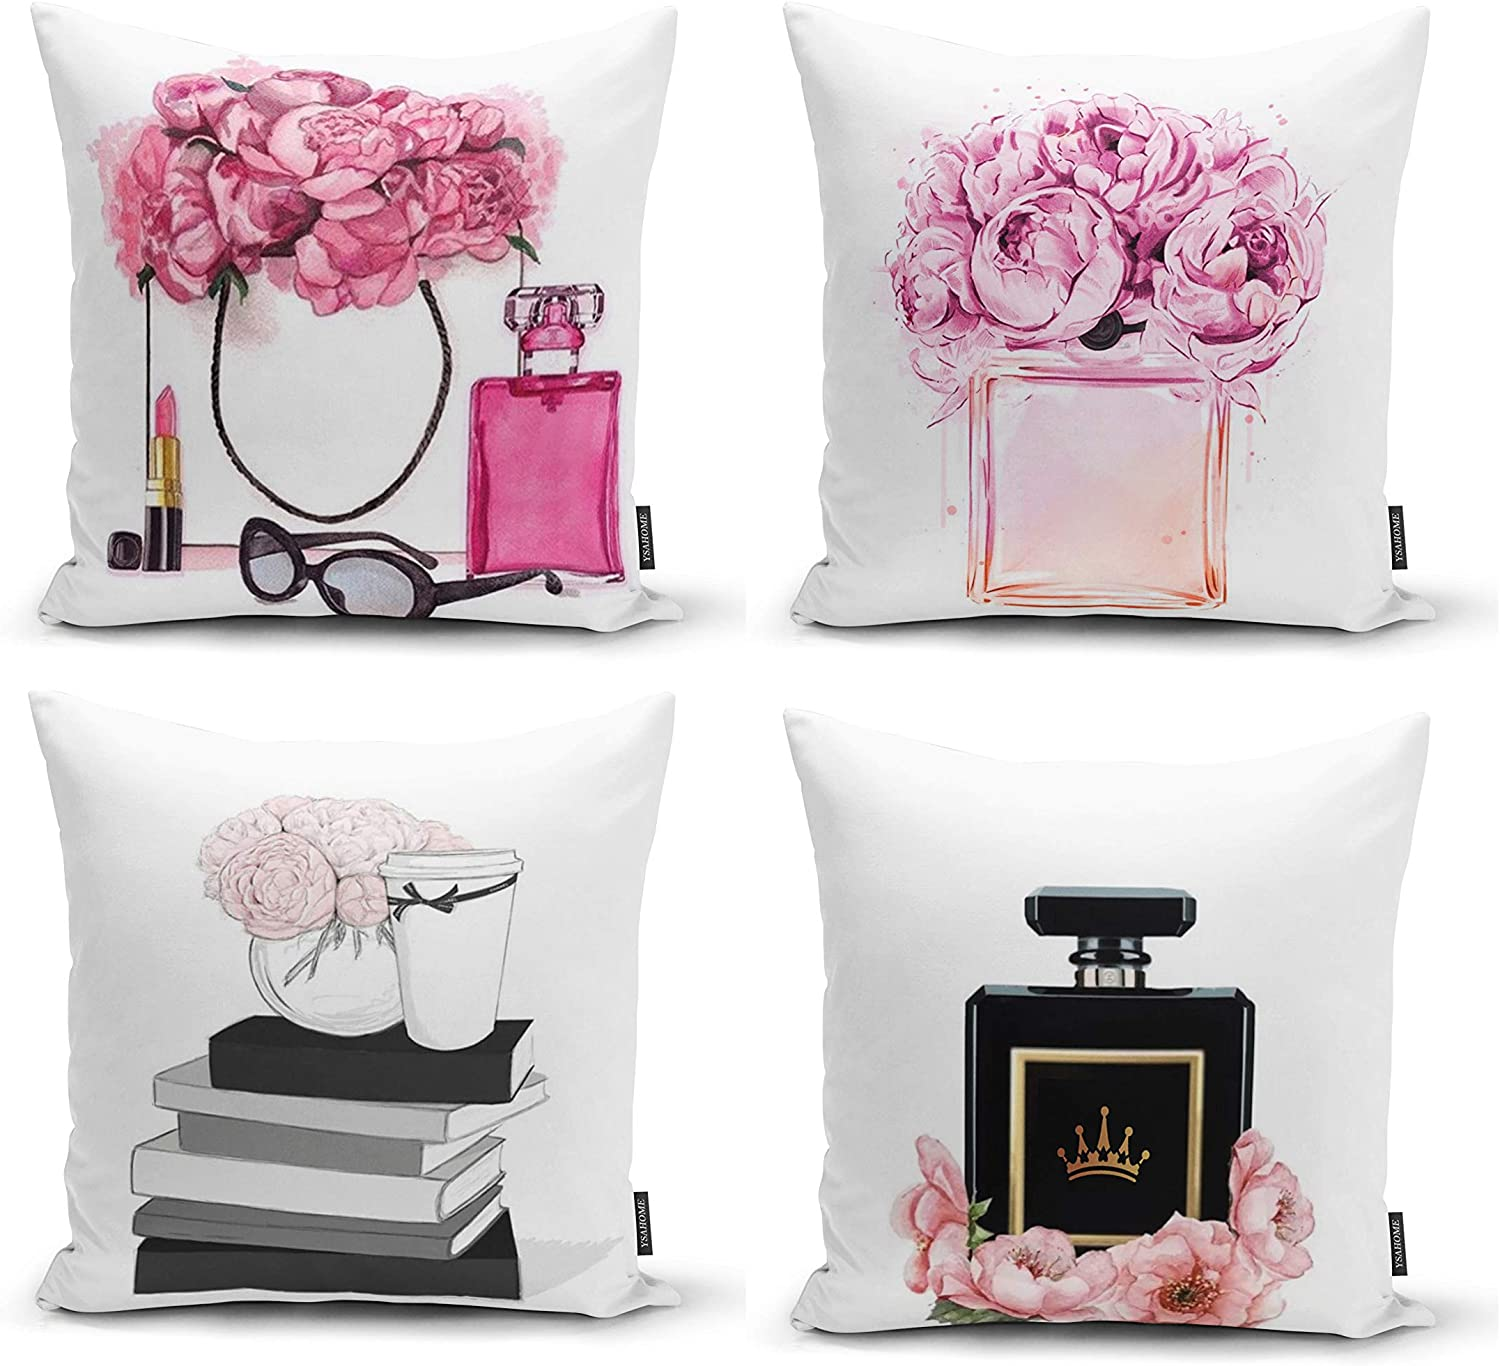 Ysahome Pink Flowers Digital Print Pillow Cover - Queen Perfume Cushion Cover - Book and Vase Decor Throw Pillow Case - Fancy Theme Decorative Accent Pillow, 18x18 Inches (Set of 4)